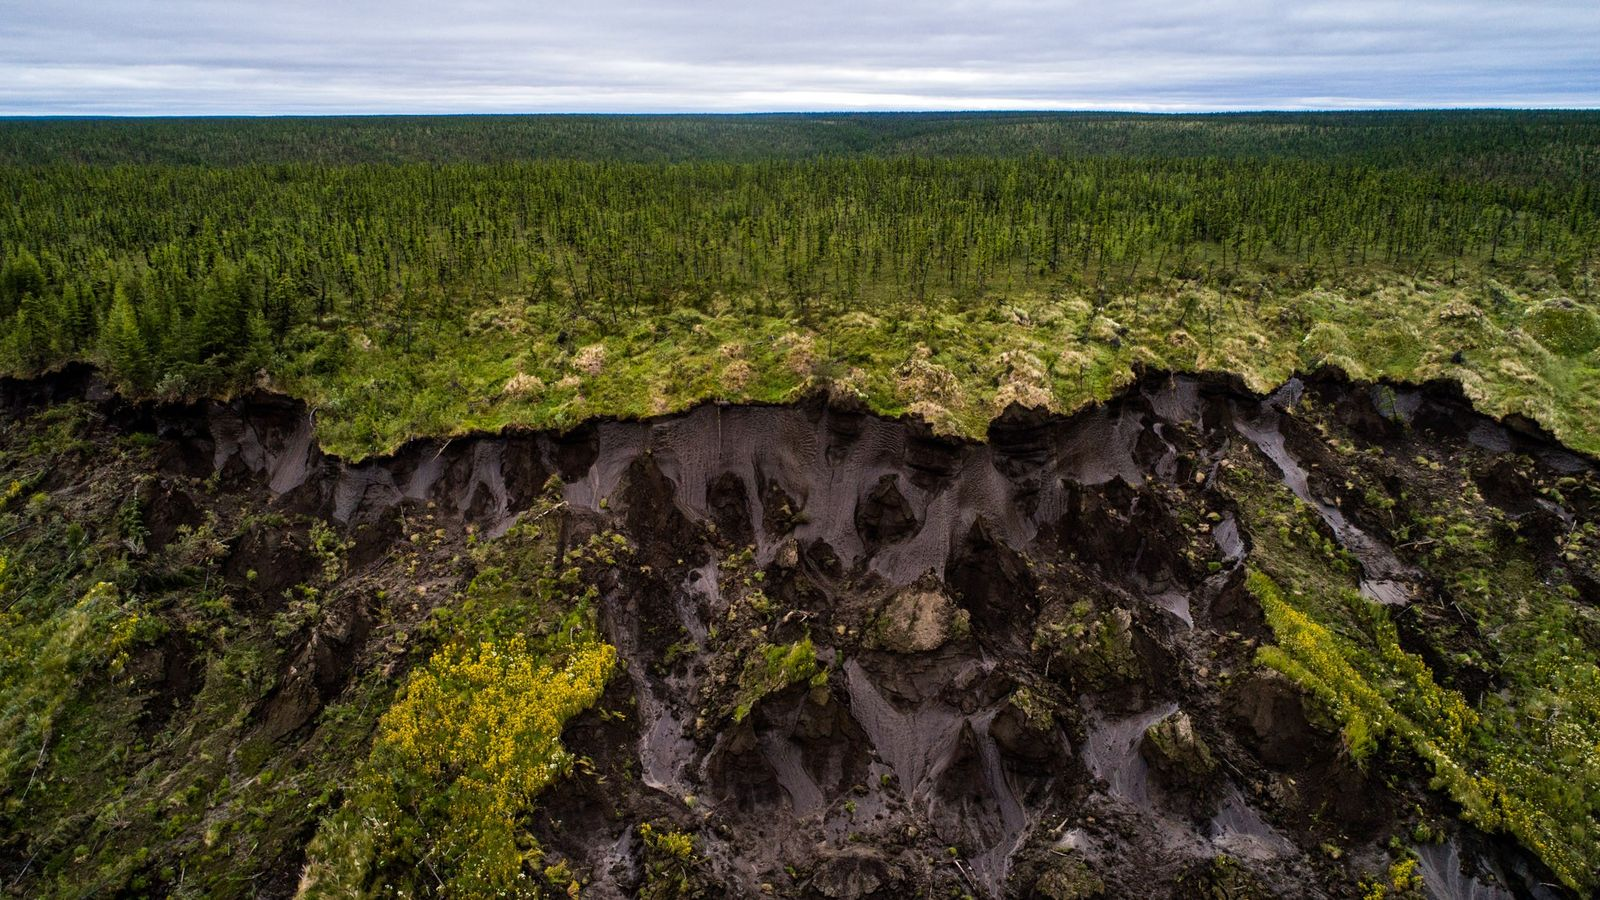 Ground collapses at Duvanny Yar, a permafrost megaslump along the Kolyma River in northern Siberia. New ...